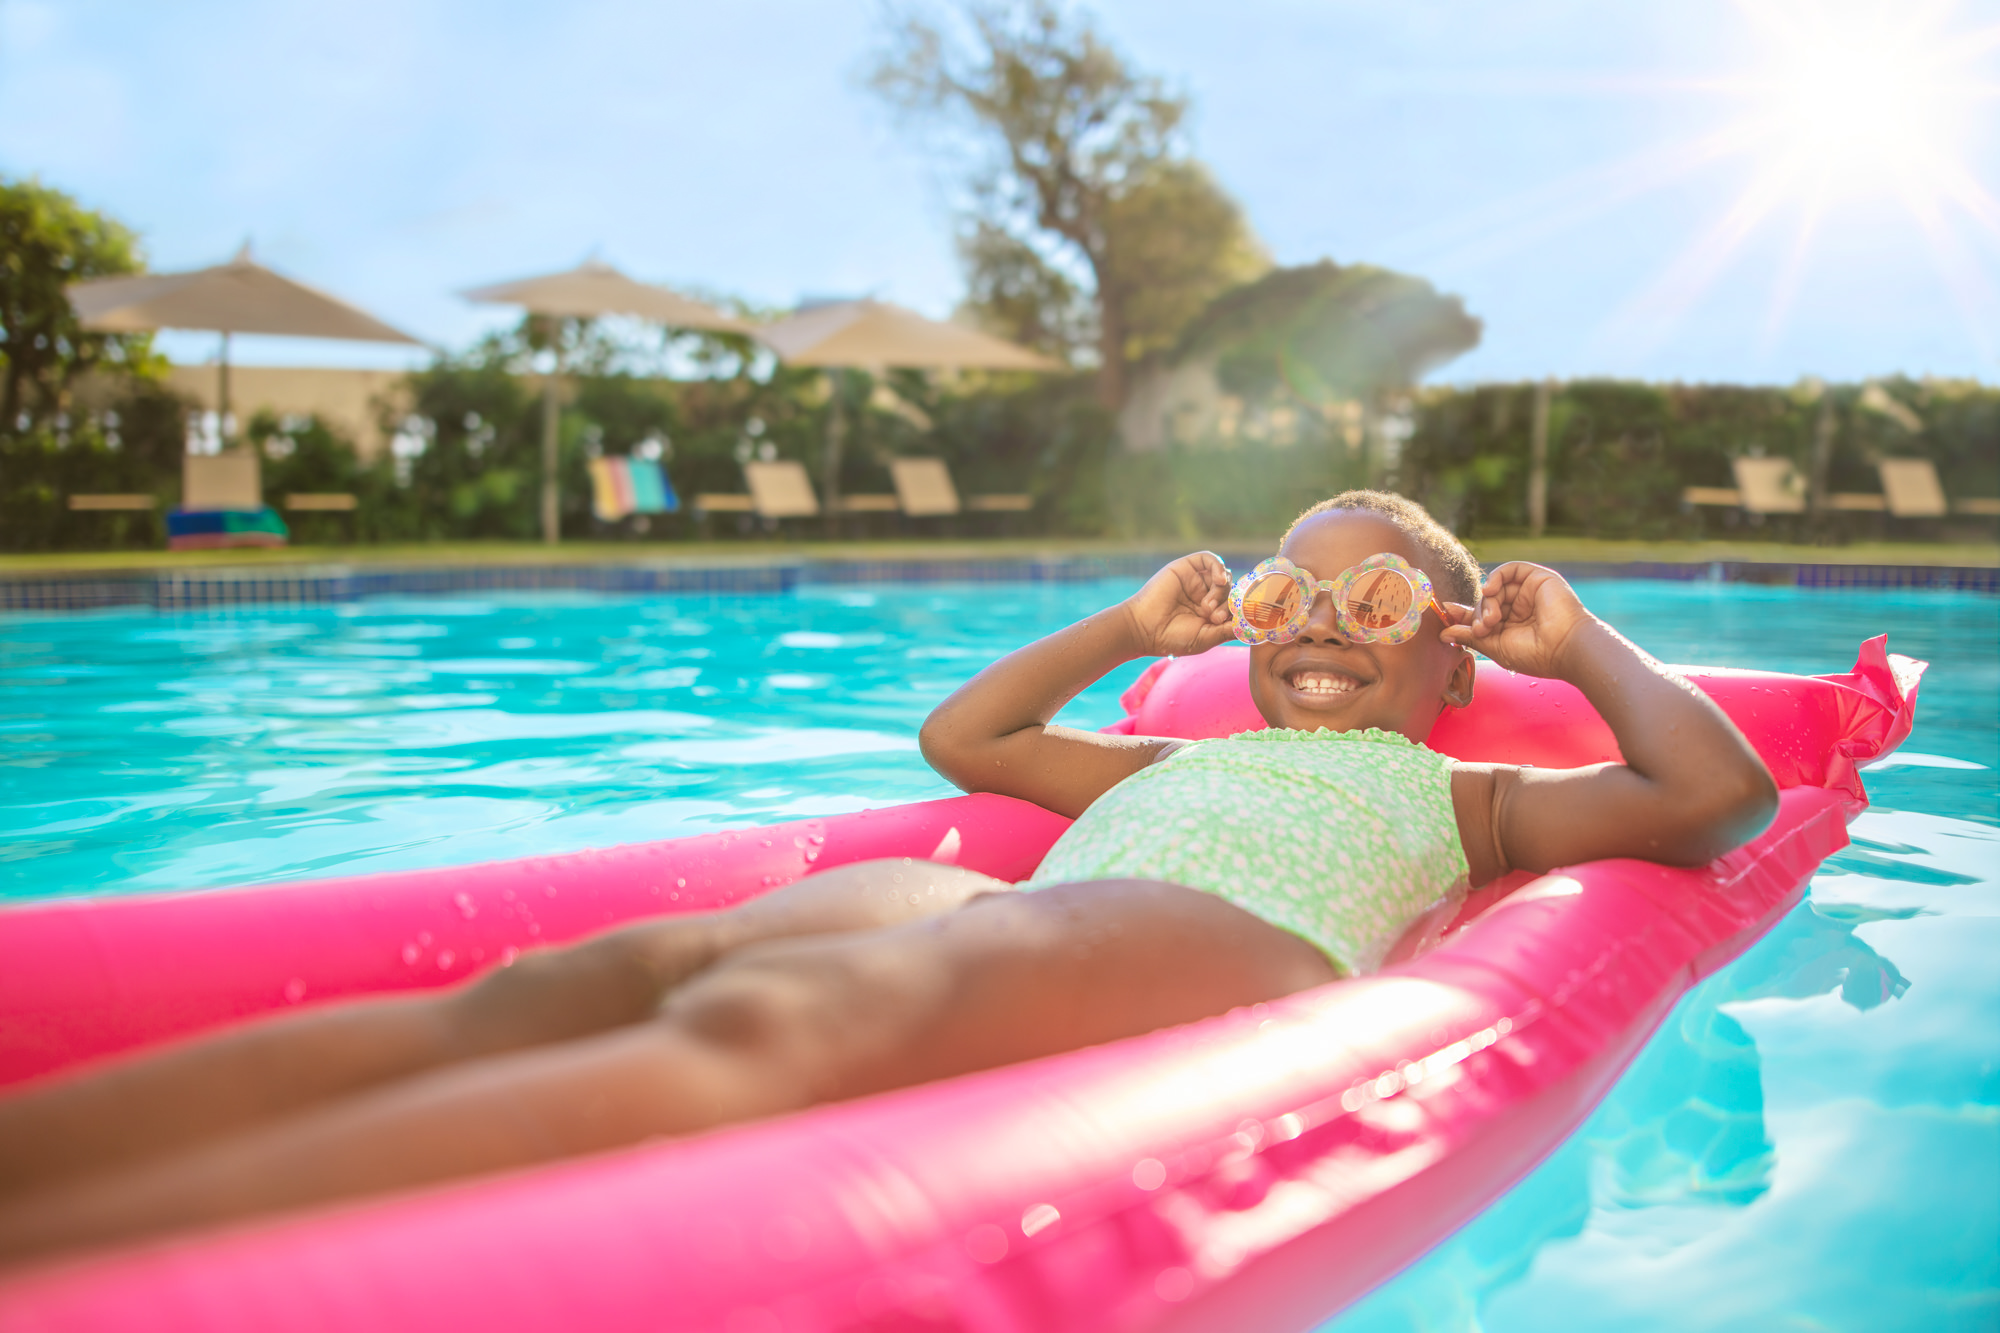 Image of girl in a pool for Tsogo Sun's Image Library & Content Library by Michelle Wastie Photography